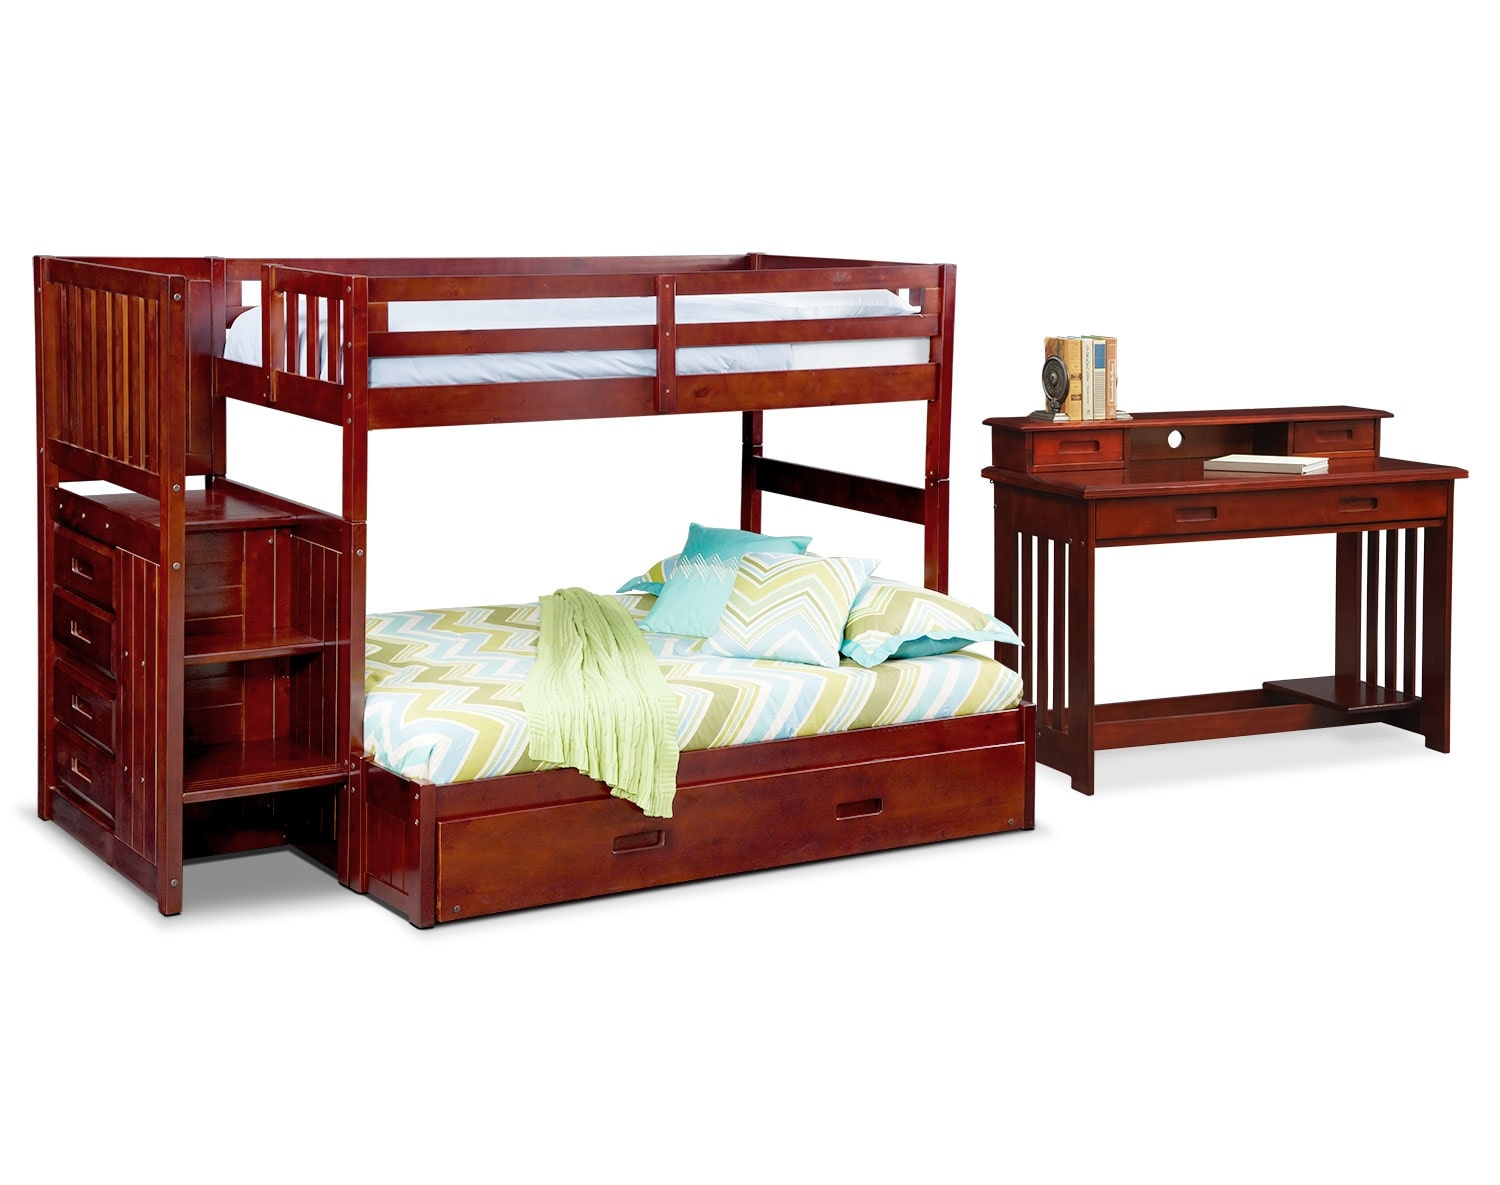 The Ranger Merlot Bunk Bed Collection